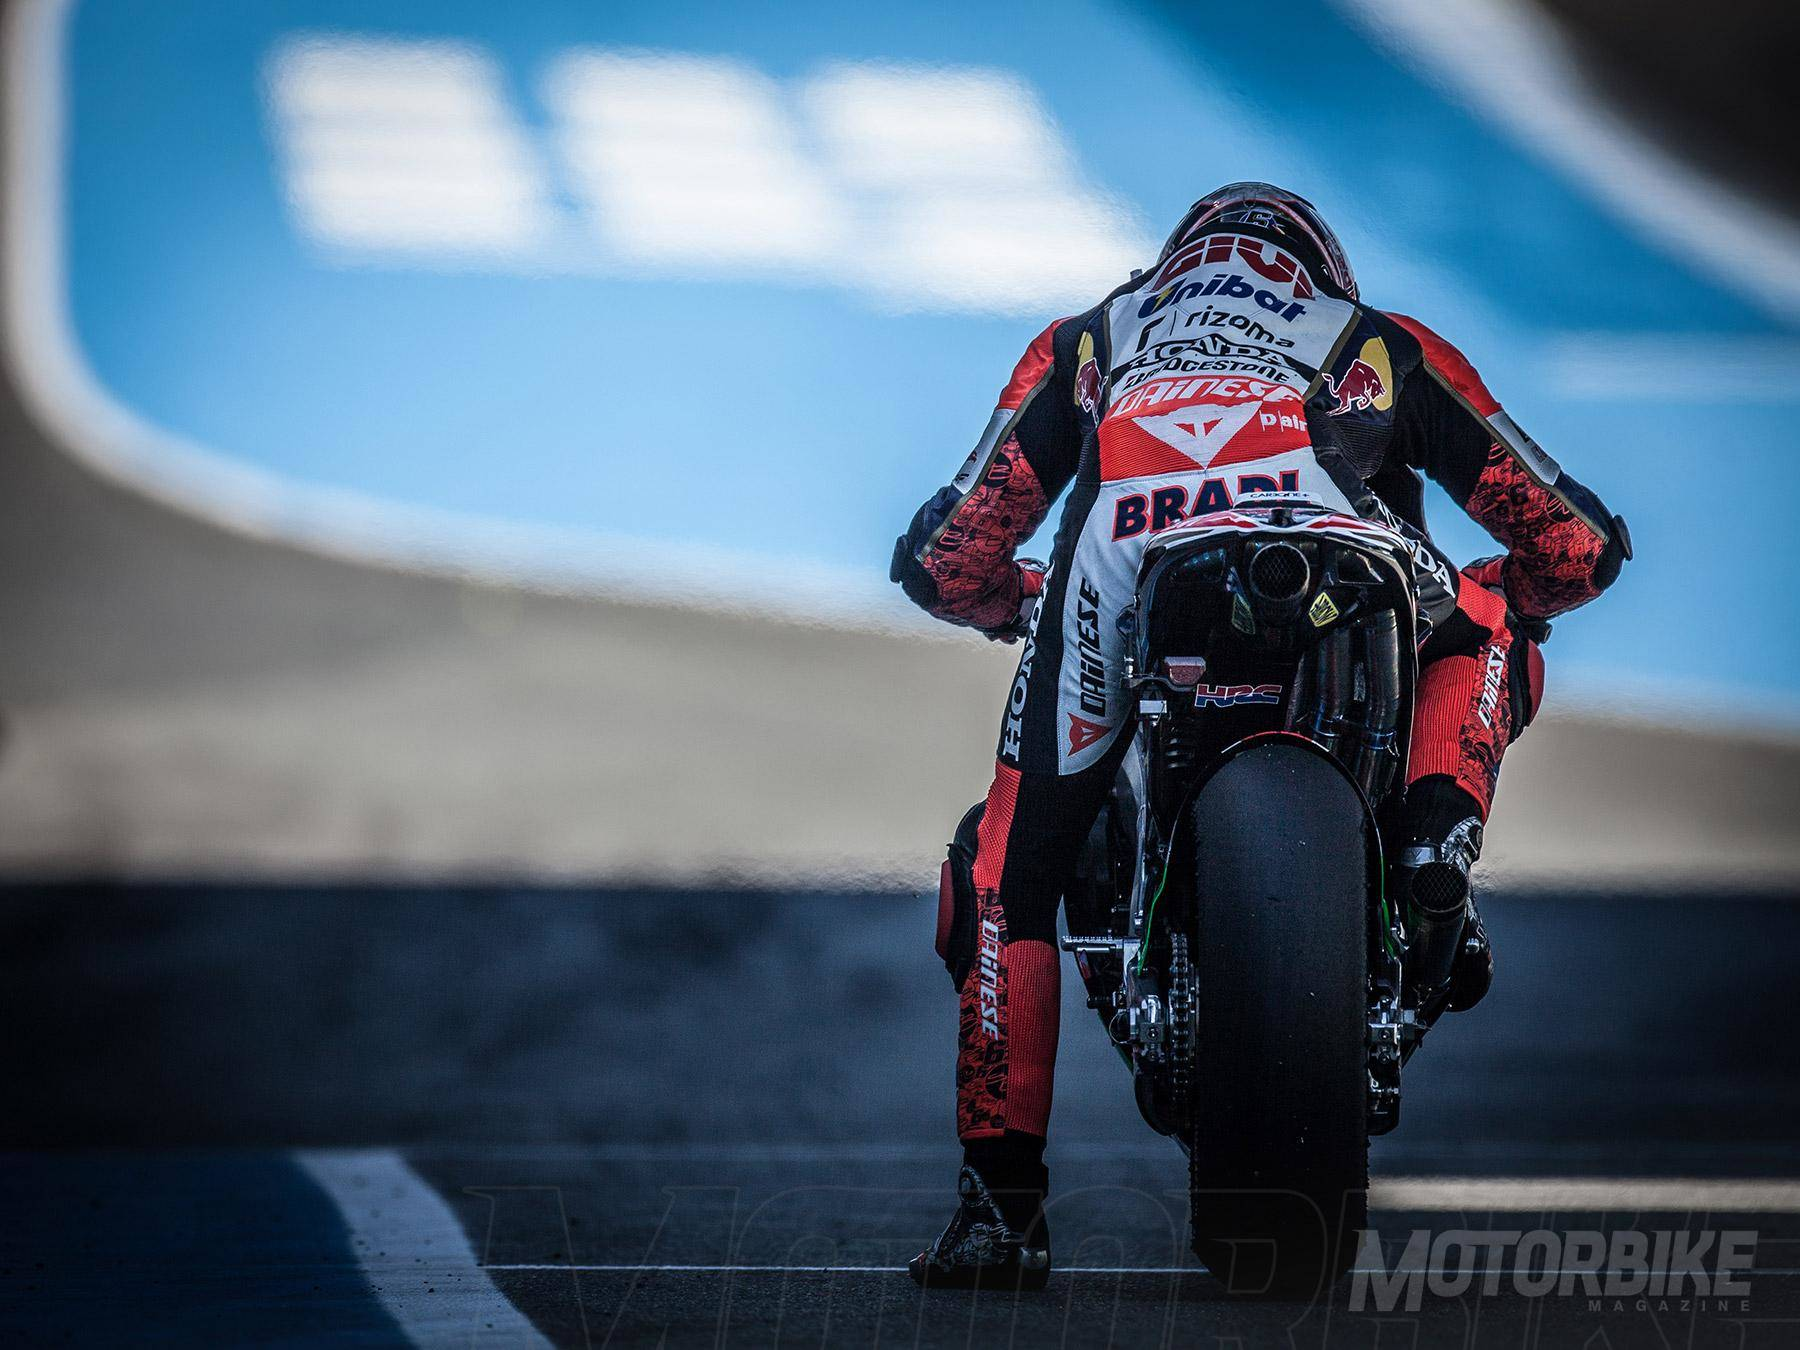 Enjoy the ride - Jerez 2014 - Motorbike Magazine